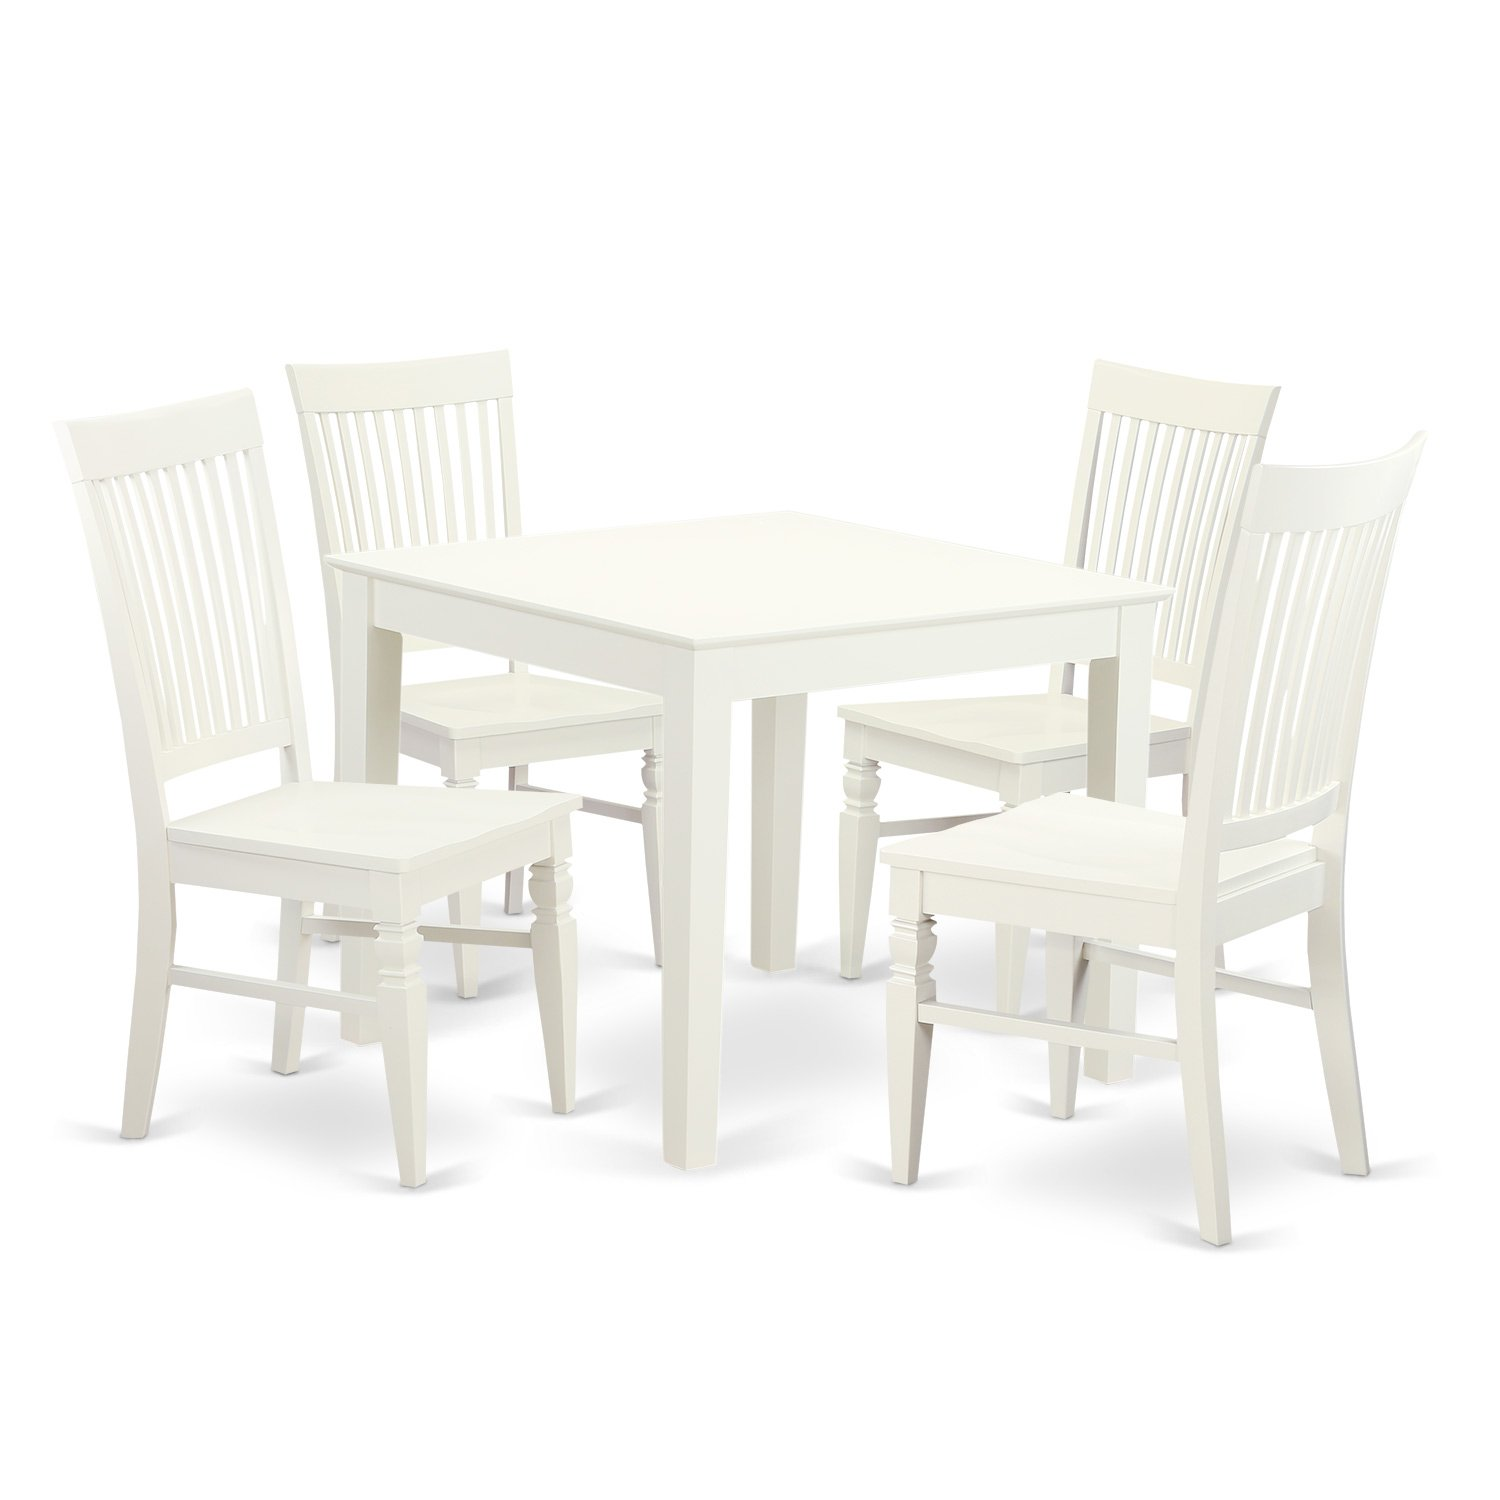 East West Furniture OXWE5-LWH-W 5 Piece Oxford Square Kitchen Table and 4 Solid Wood Kitchen Chairs in Linen White Finish